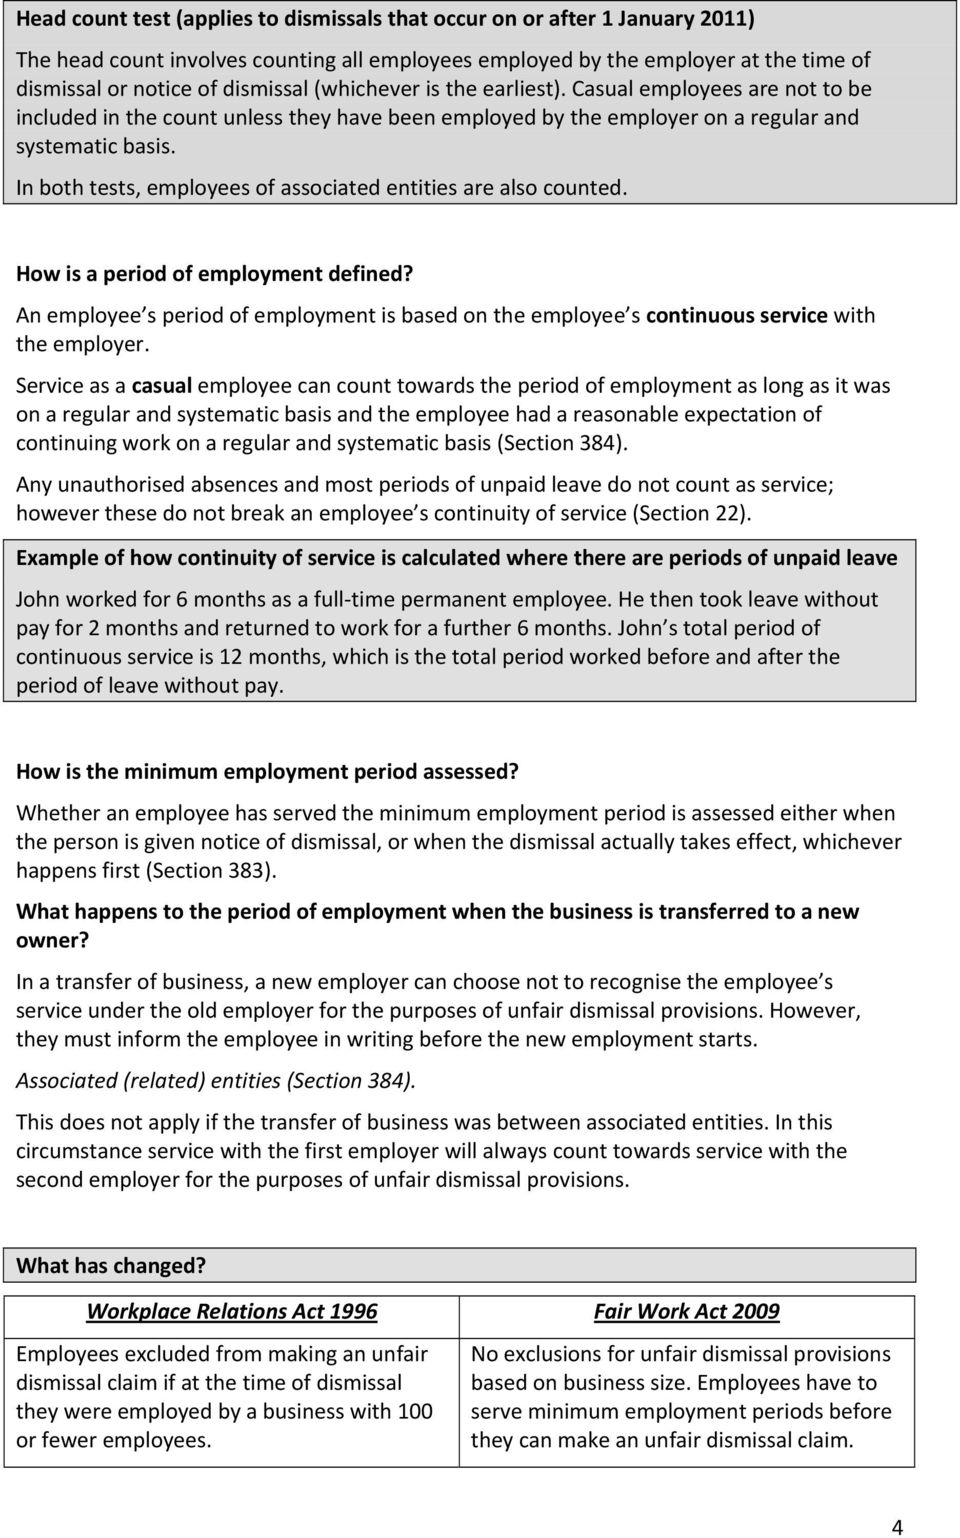 In both tests, employees of associated entities are also counted. How is a period of employment defined?